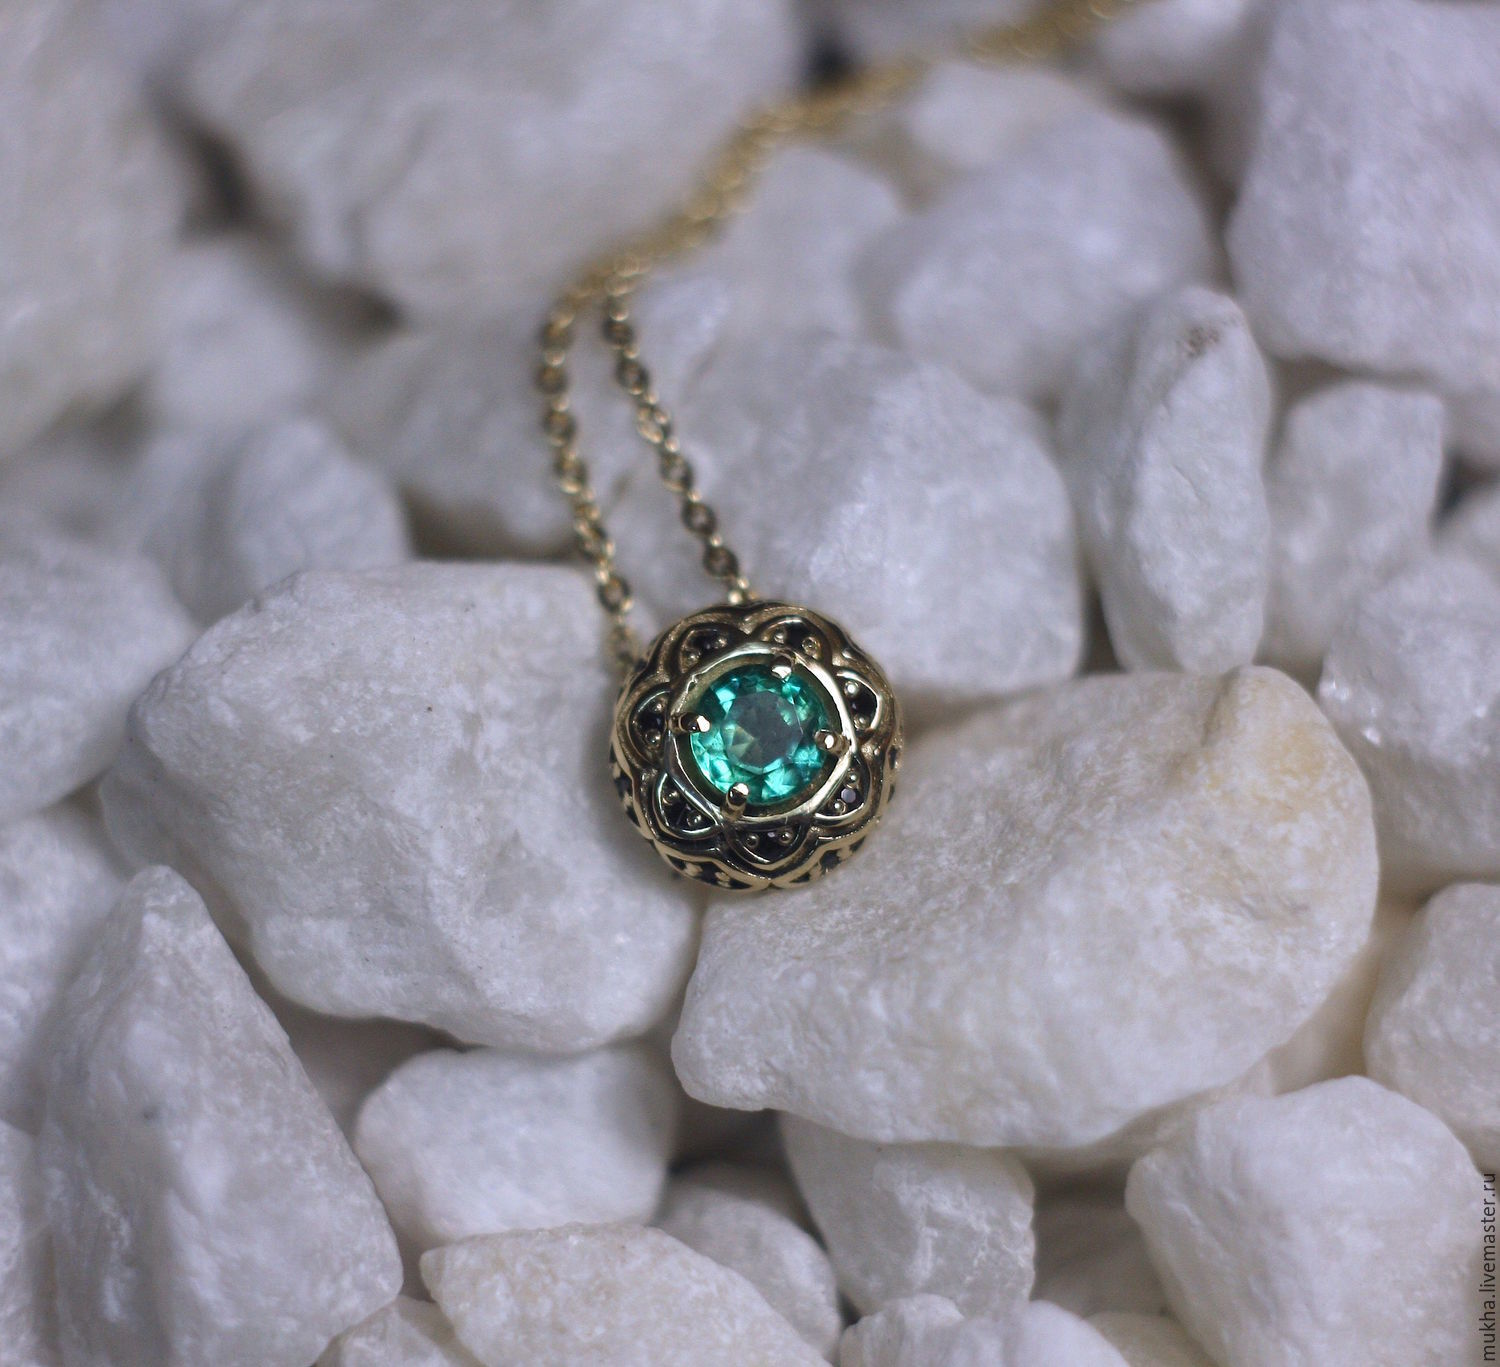 Rose des Vents pendant with Emerald in gold, Pendants, Moscow,  Фото №1